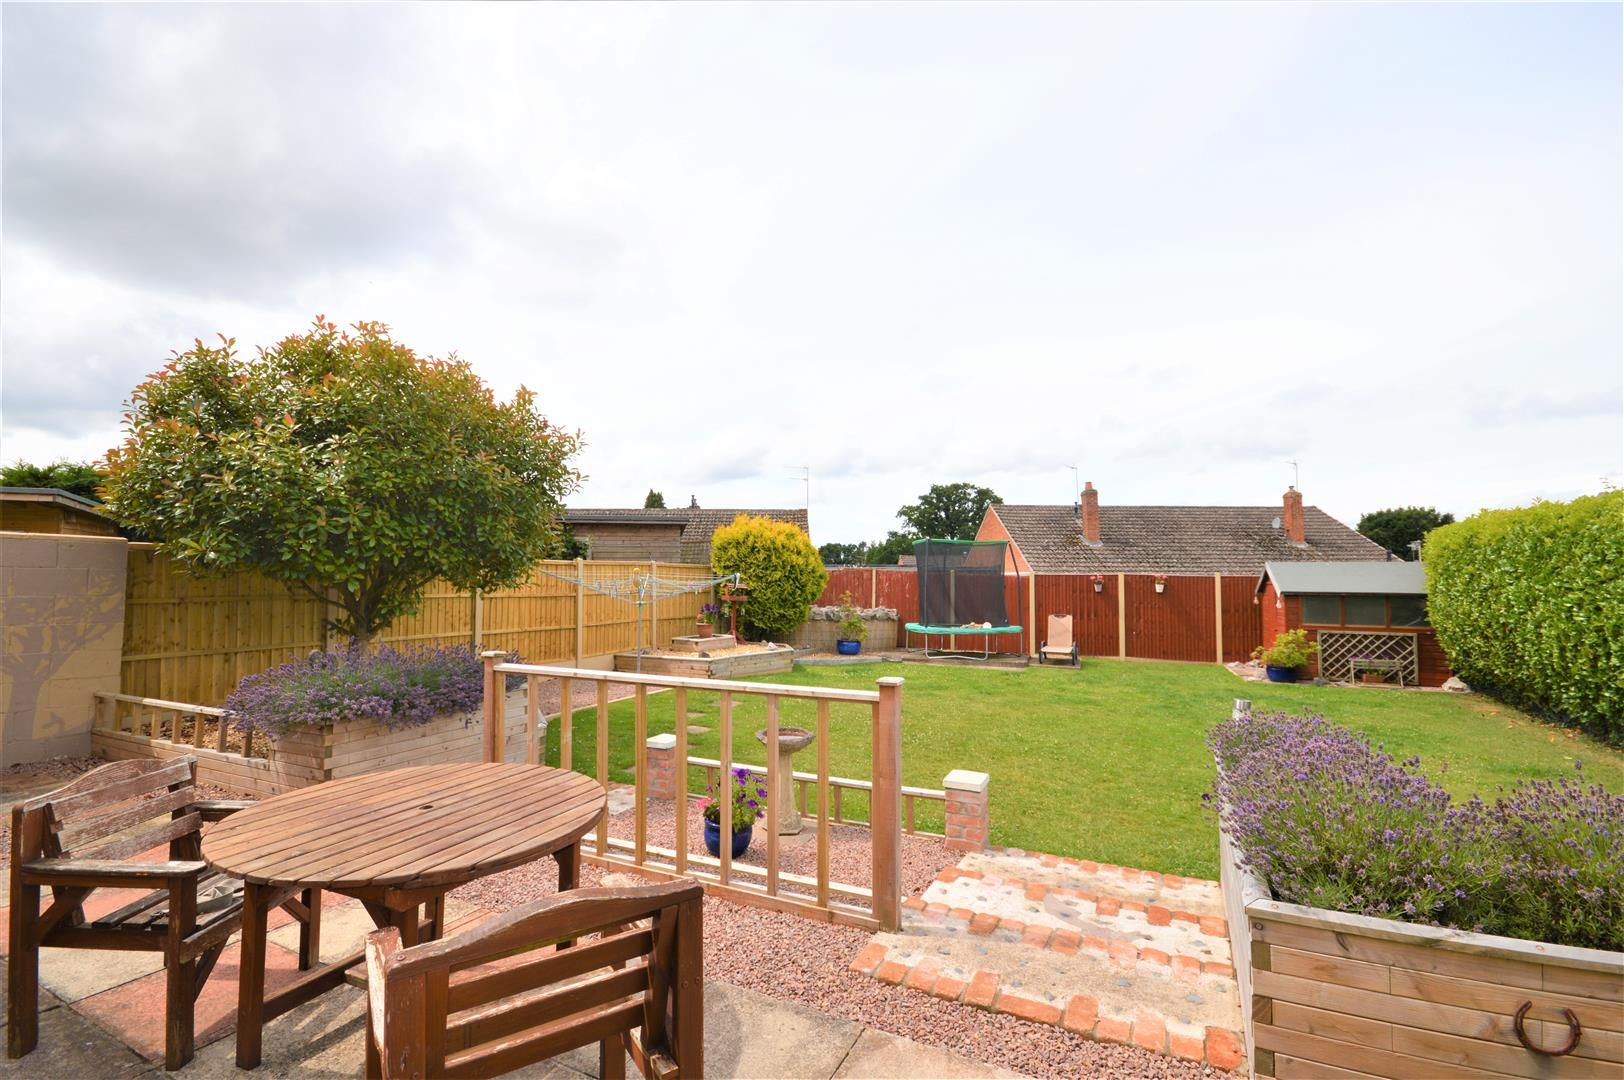 4 bed semi-detached for sale in Clehonger 13